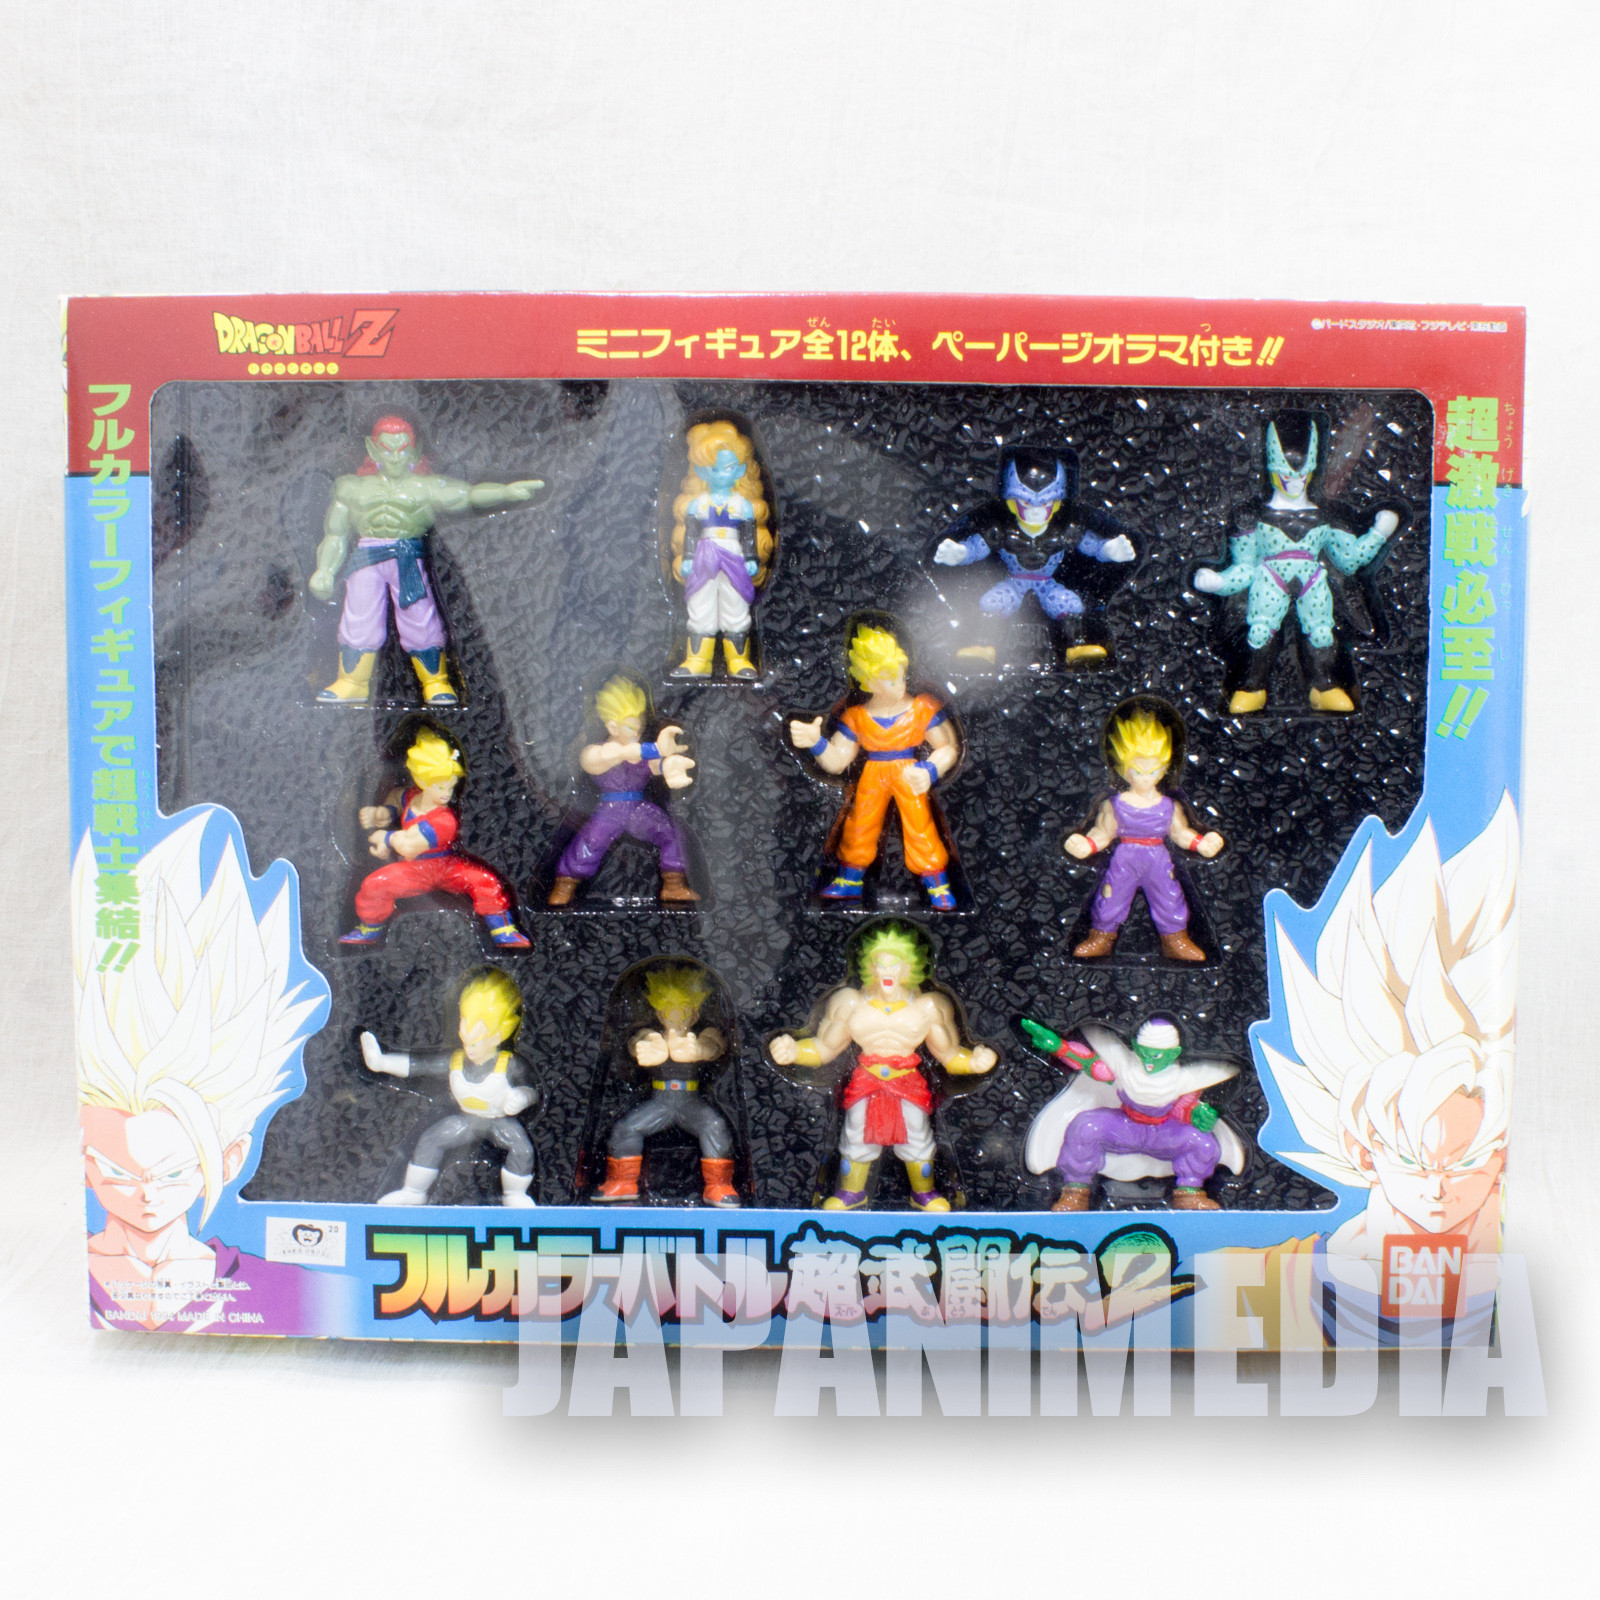 Dragon Ball Z Full color Battle 2 Mini Figure 12pc set with Paper Diorama JAPAN ANIME